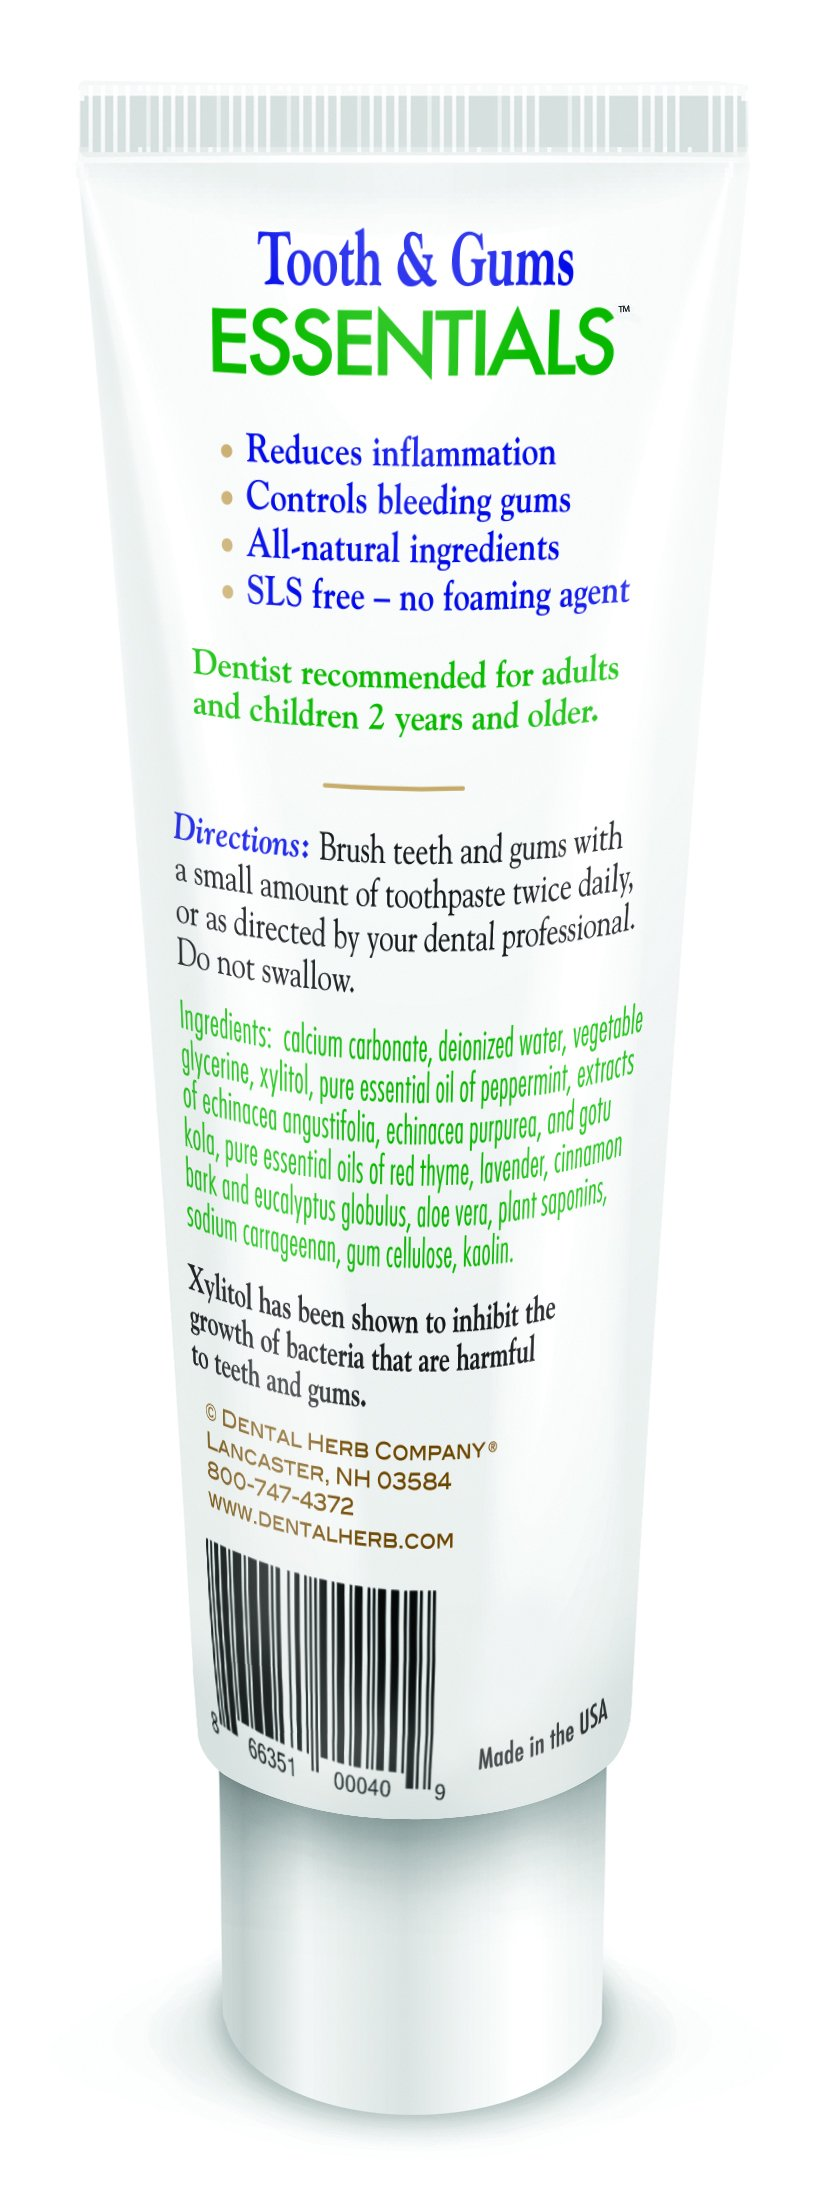 Tooth & Gums Value Pack - Under the Gums Irrigant and NEW Essentials Paste by Dental Herb Company (Image #1)